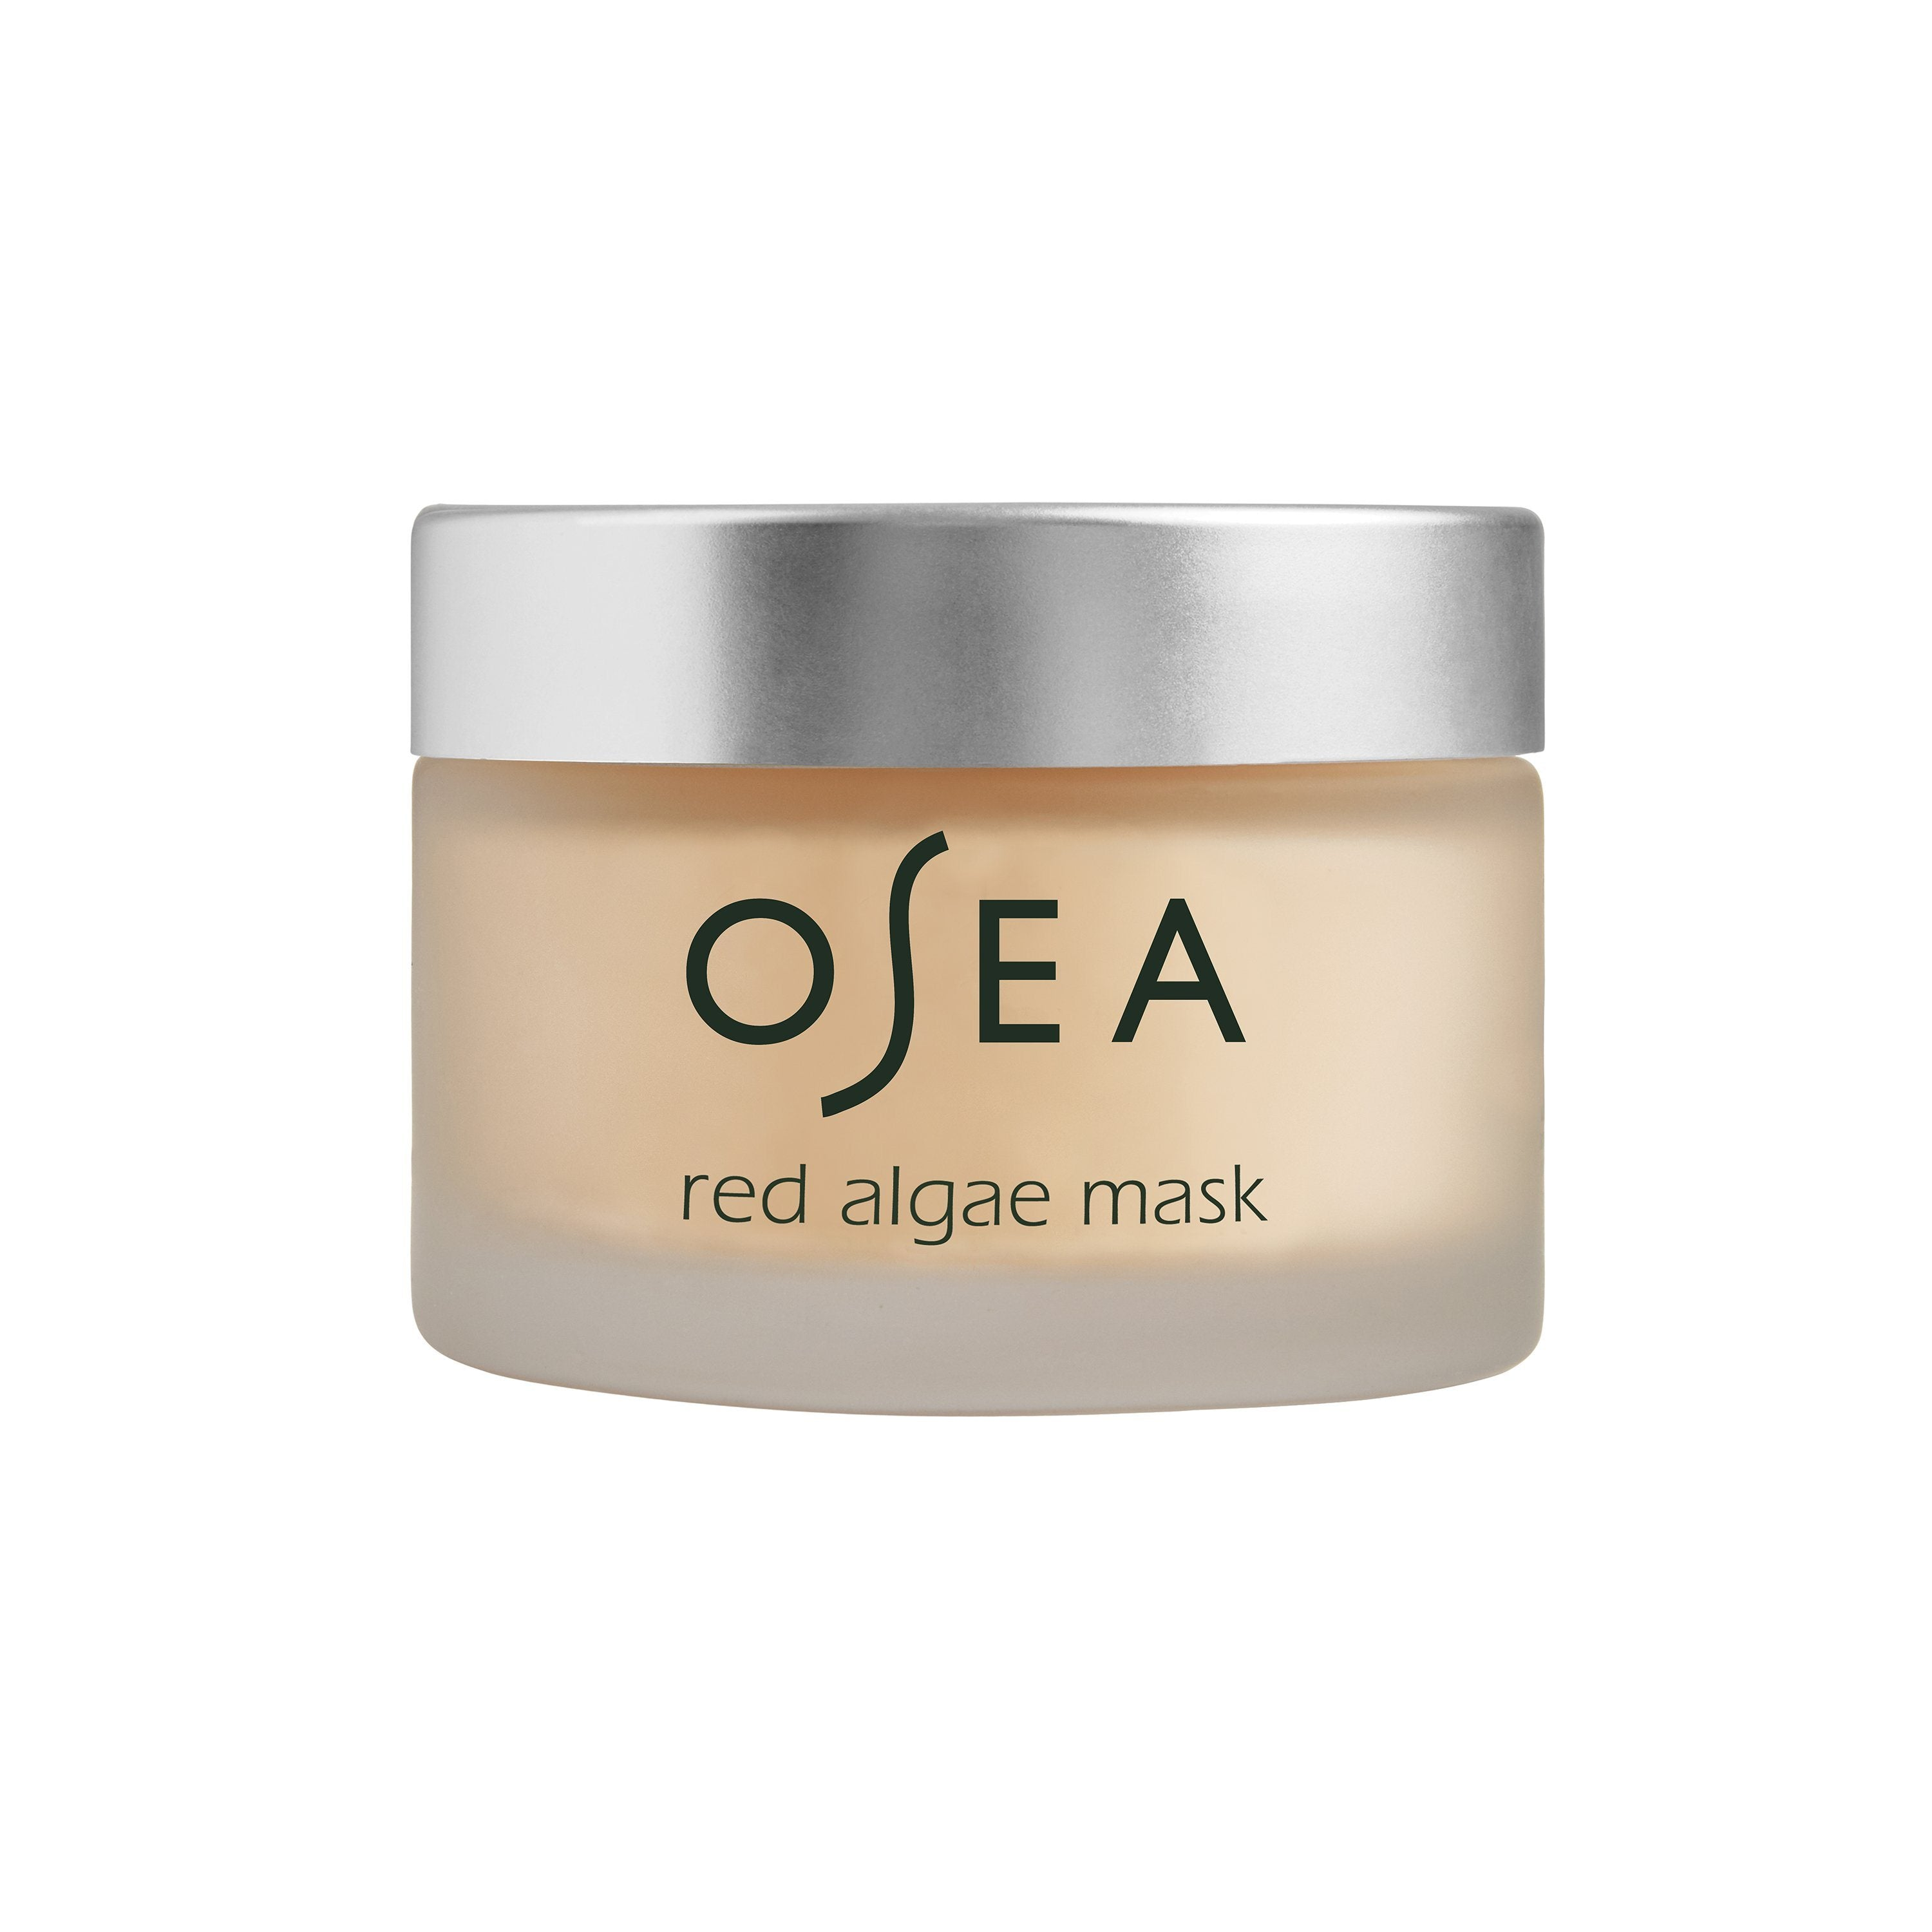 Red Algae Mask by Osea #2